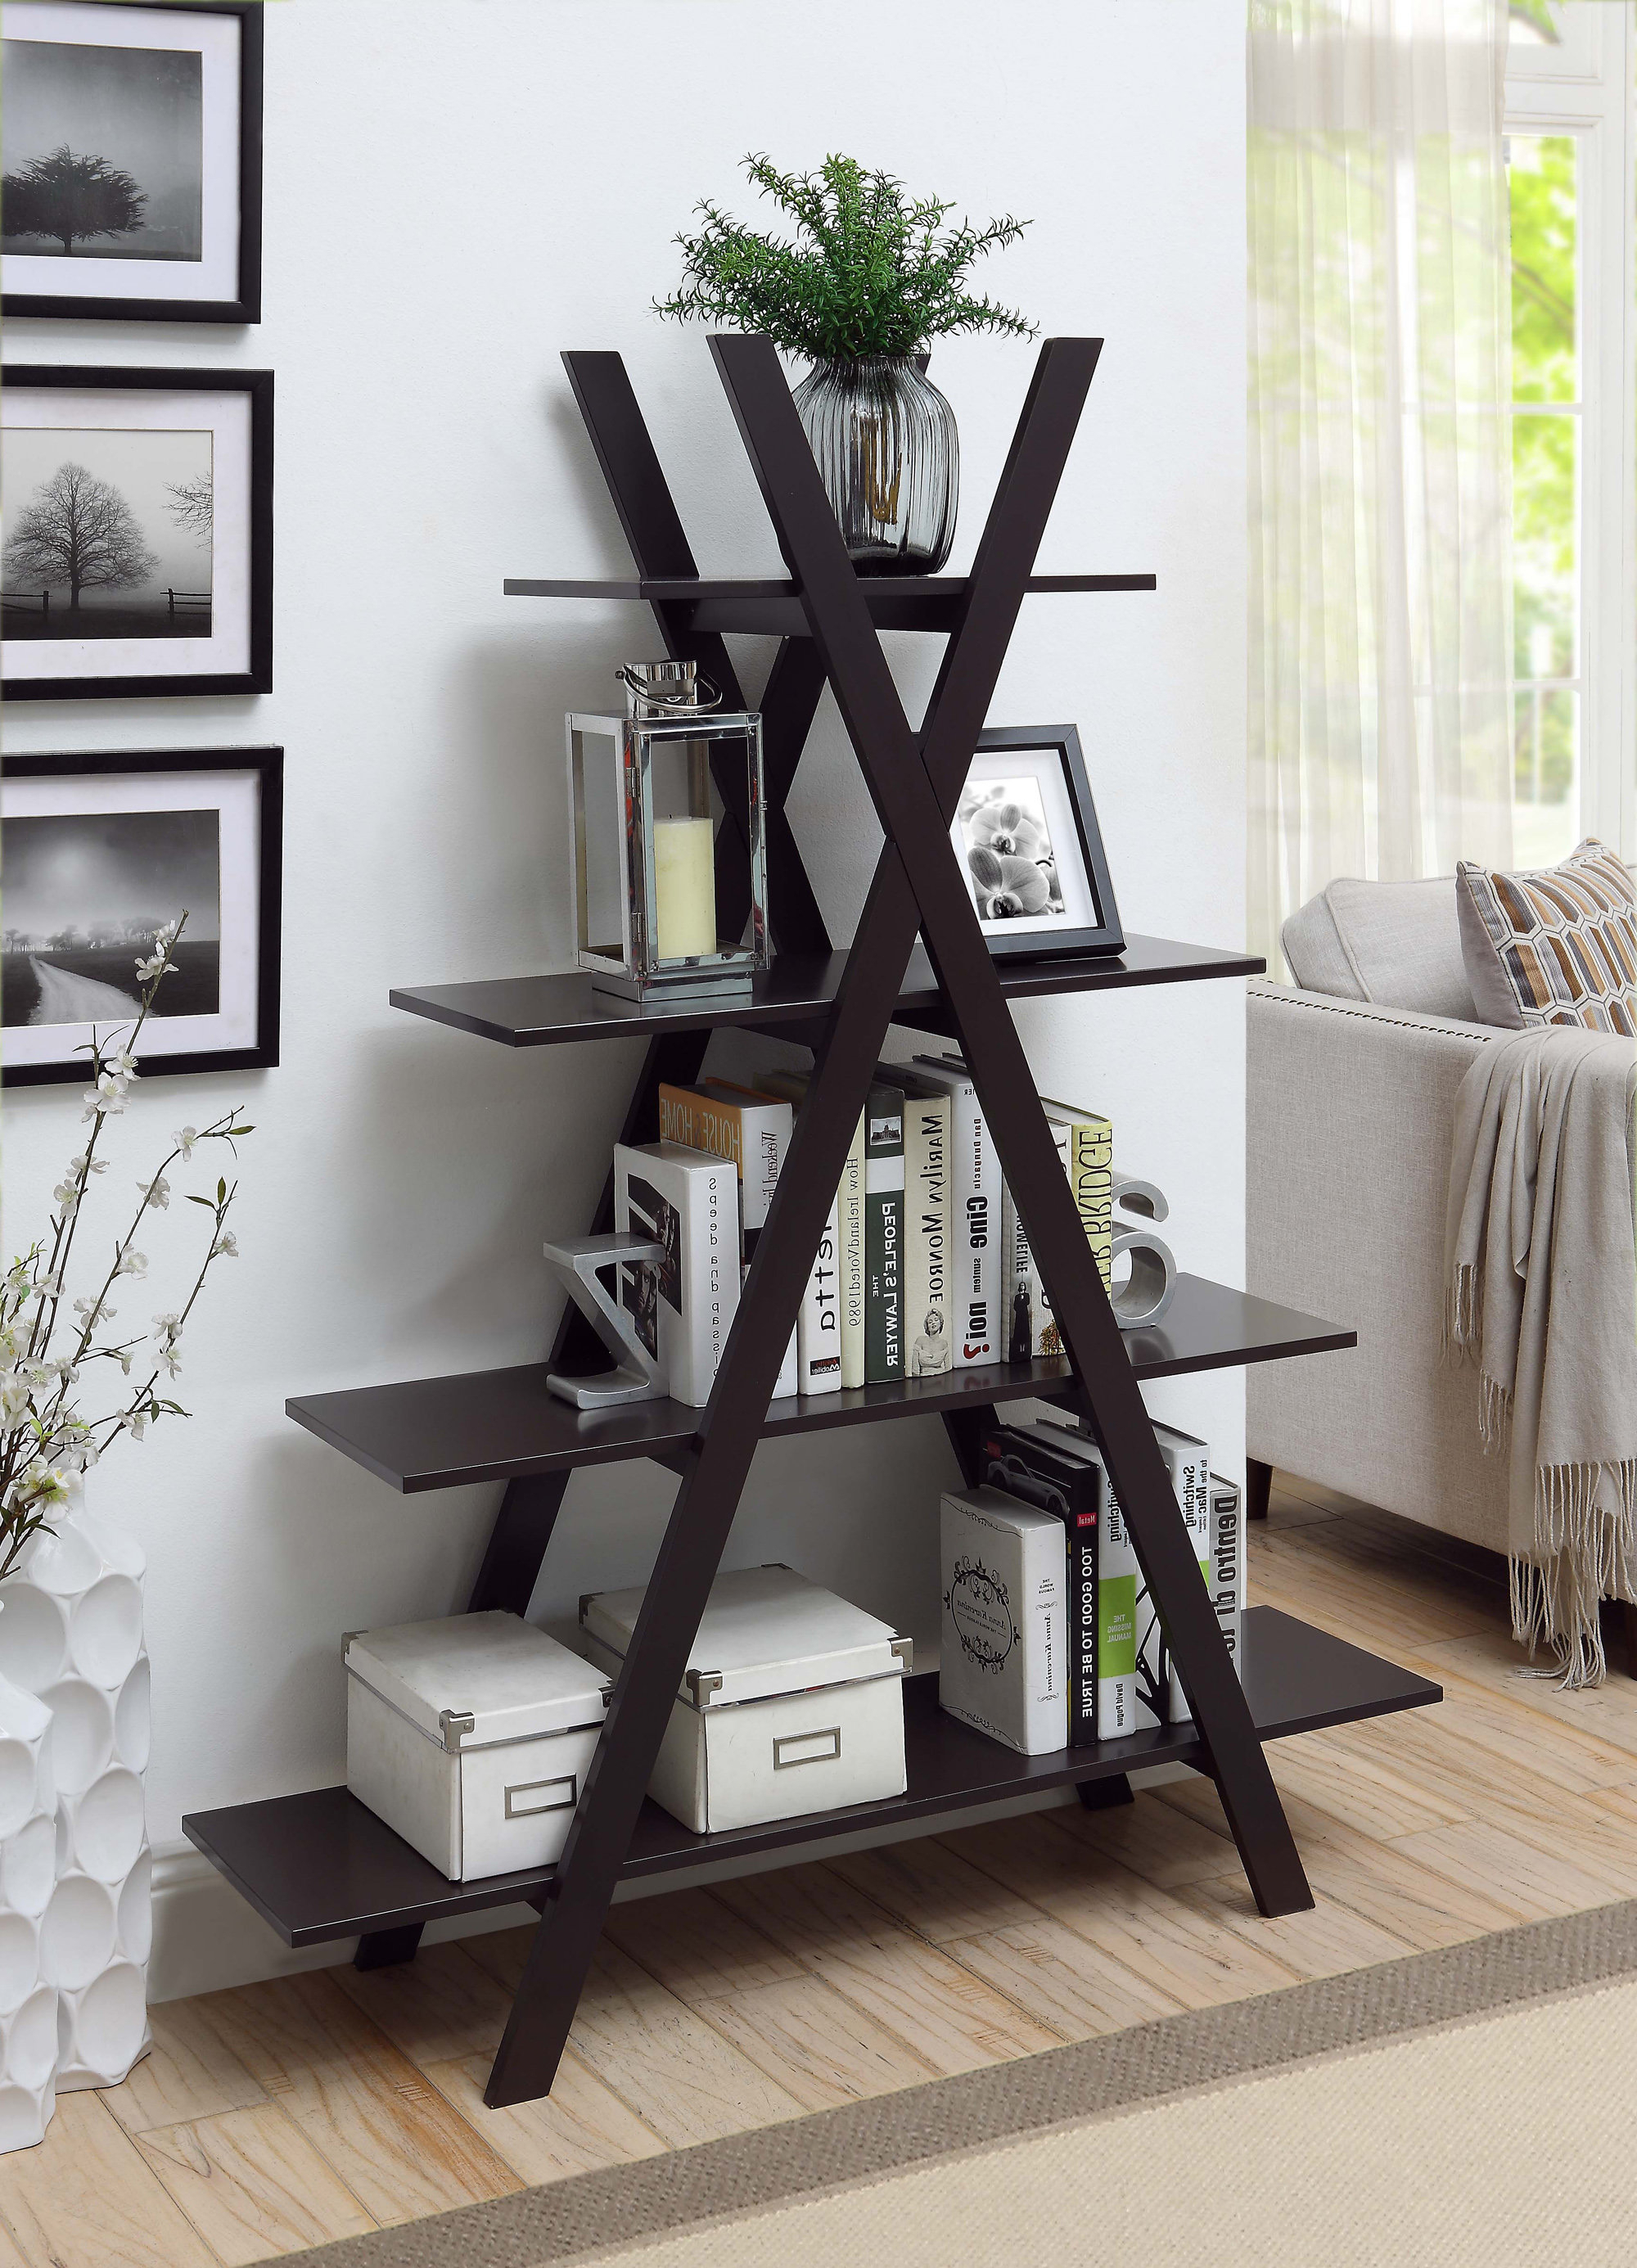 Stoneford Etagere Bookcase Regarding Newest Stoneford Etagere Bookcases (Gallery 9 of 20)